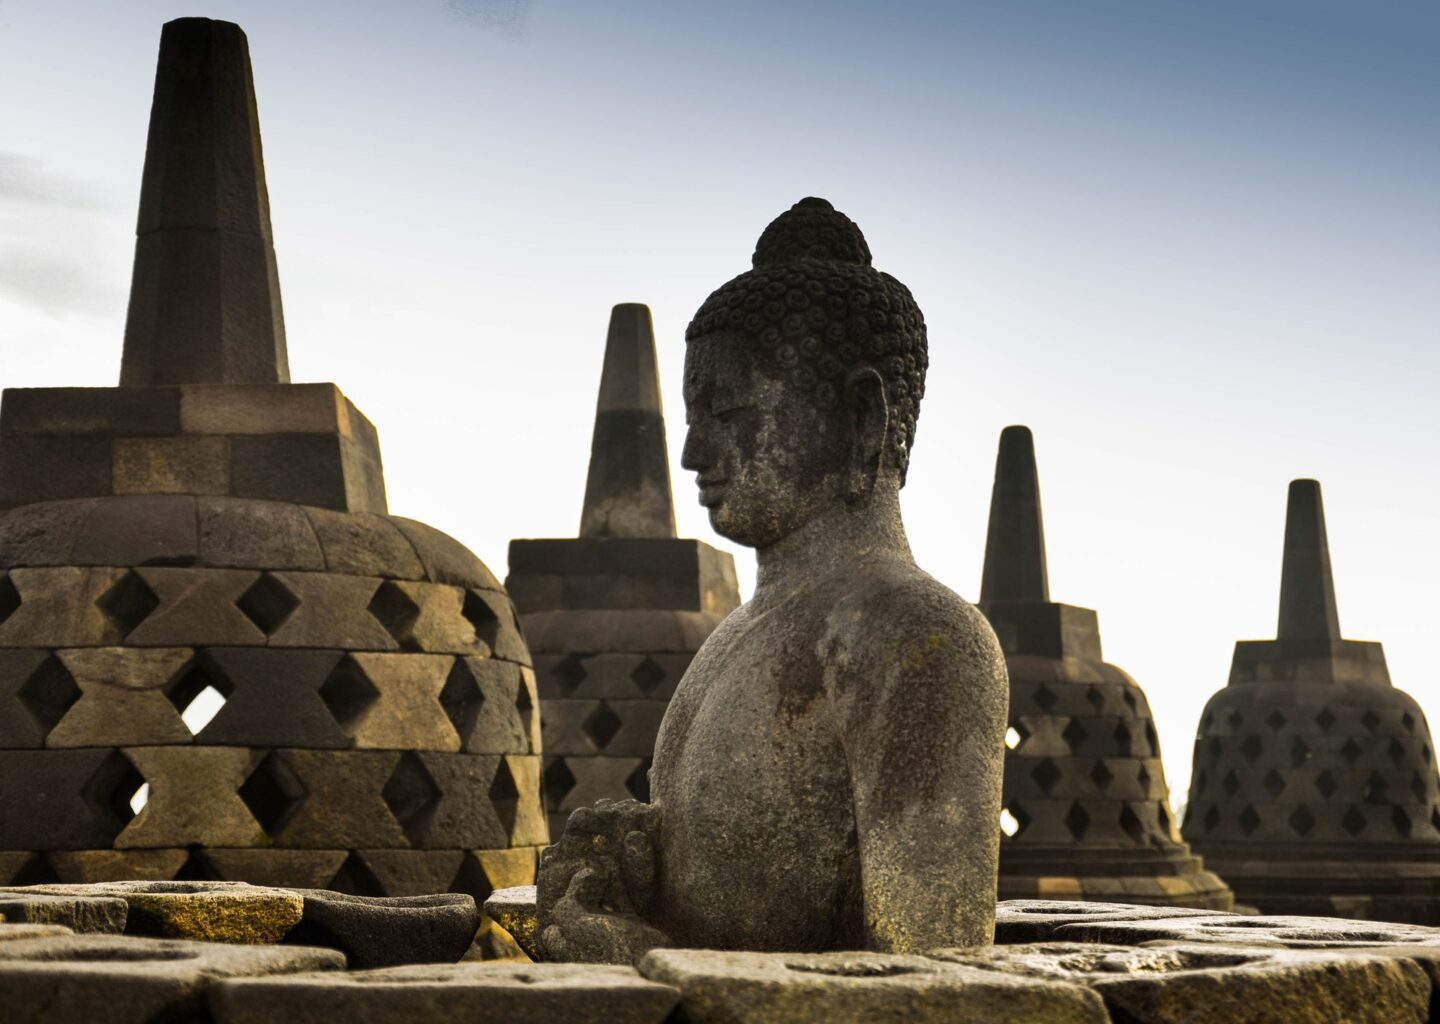 Indonesia: Yogyakarta, The Perfect Place To Visit